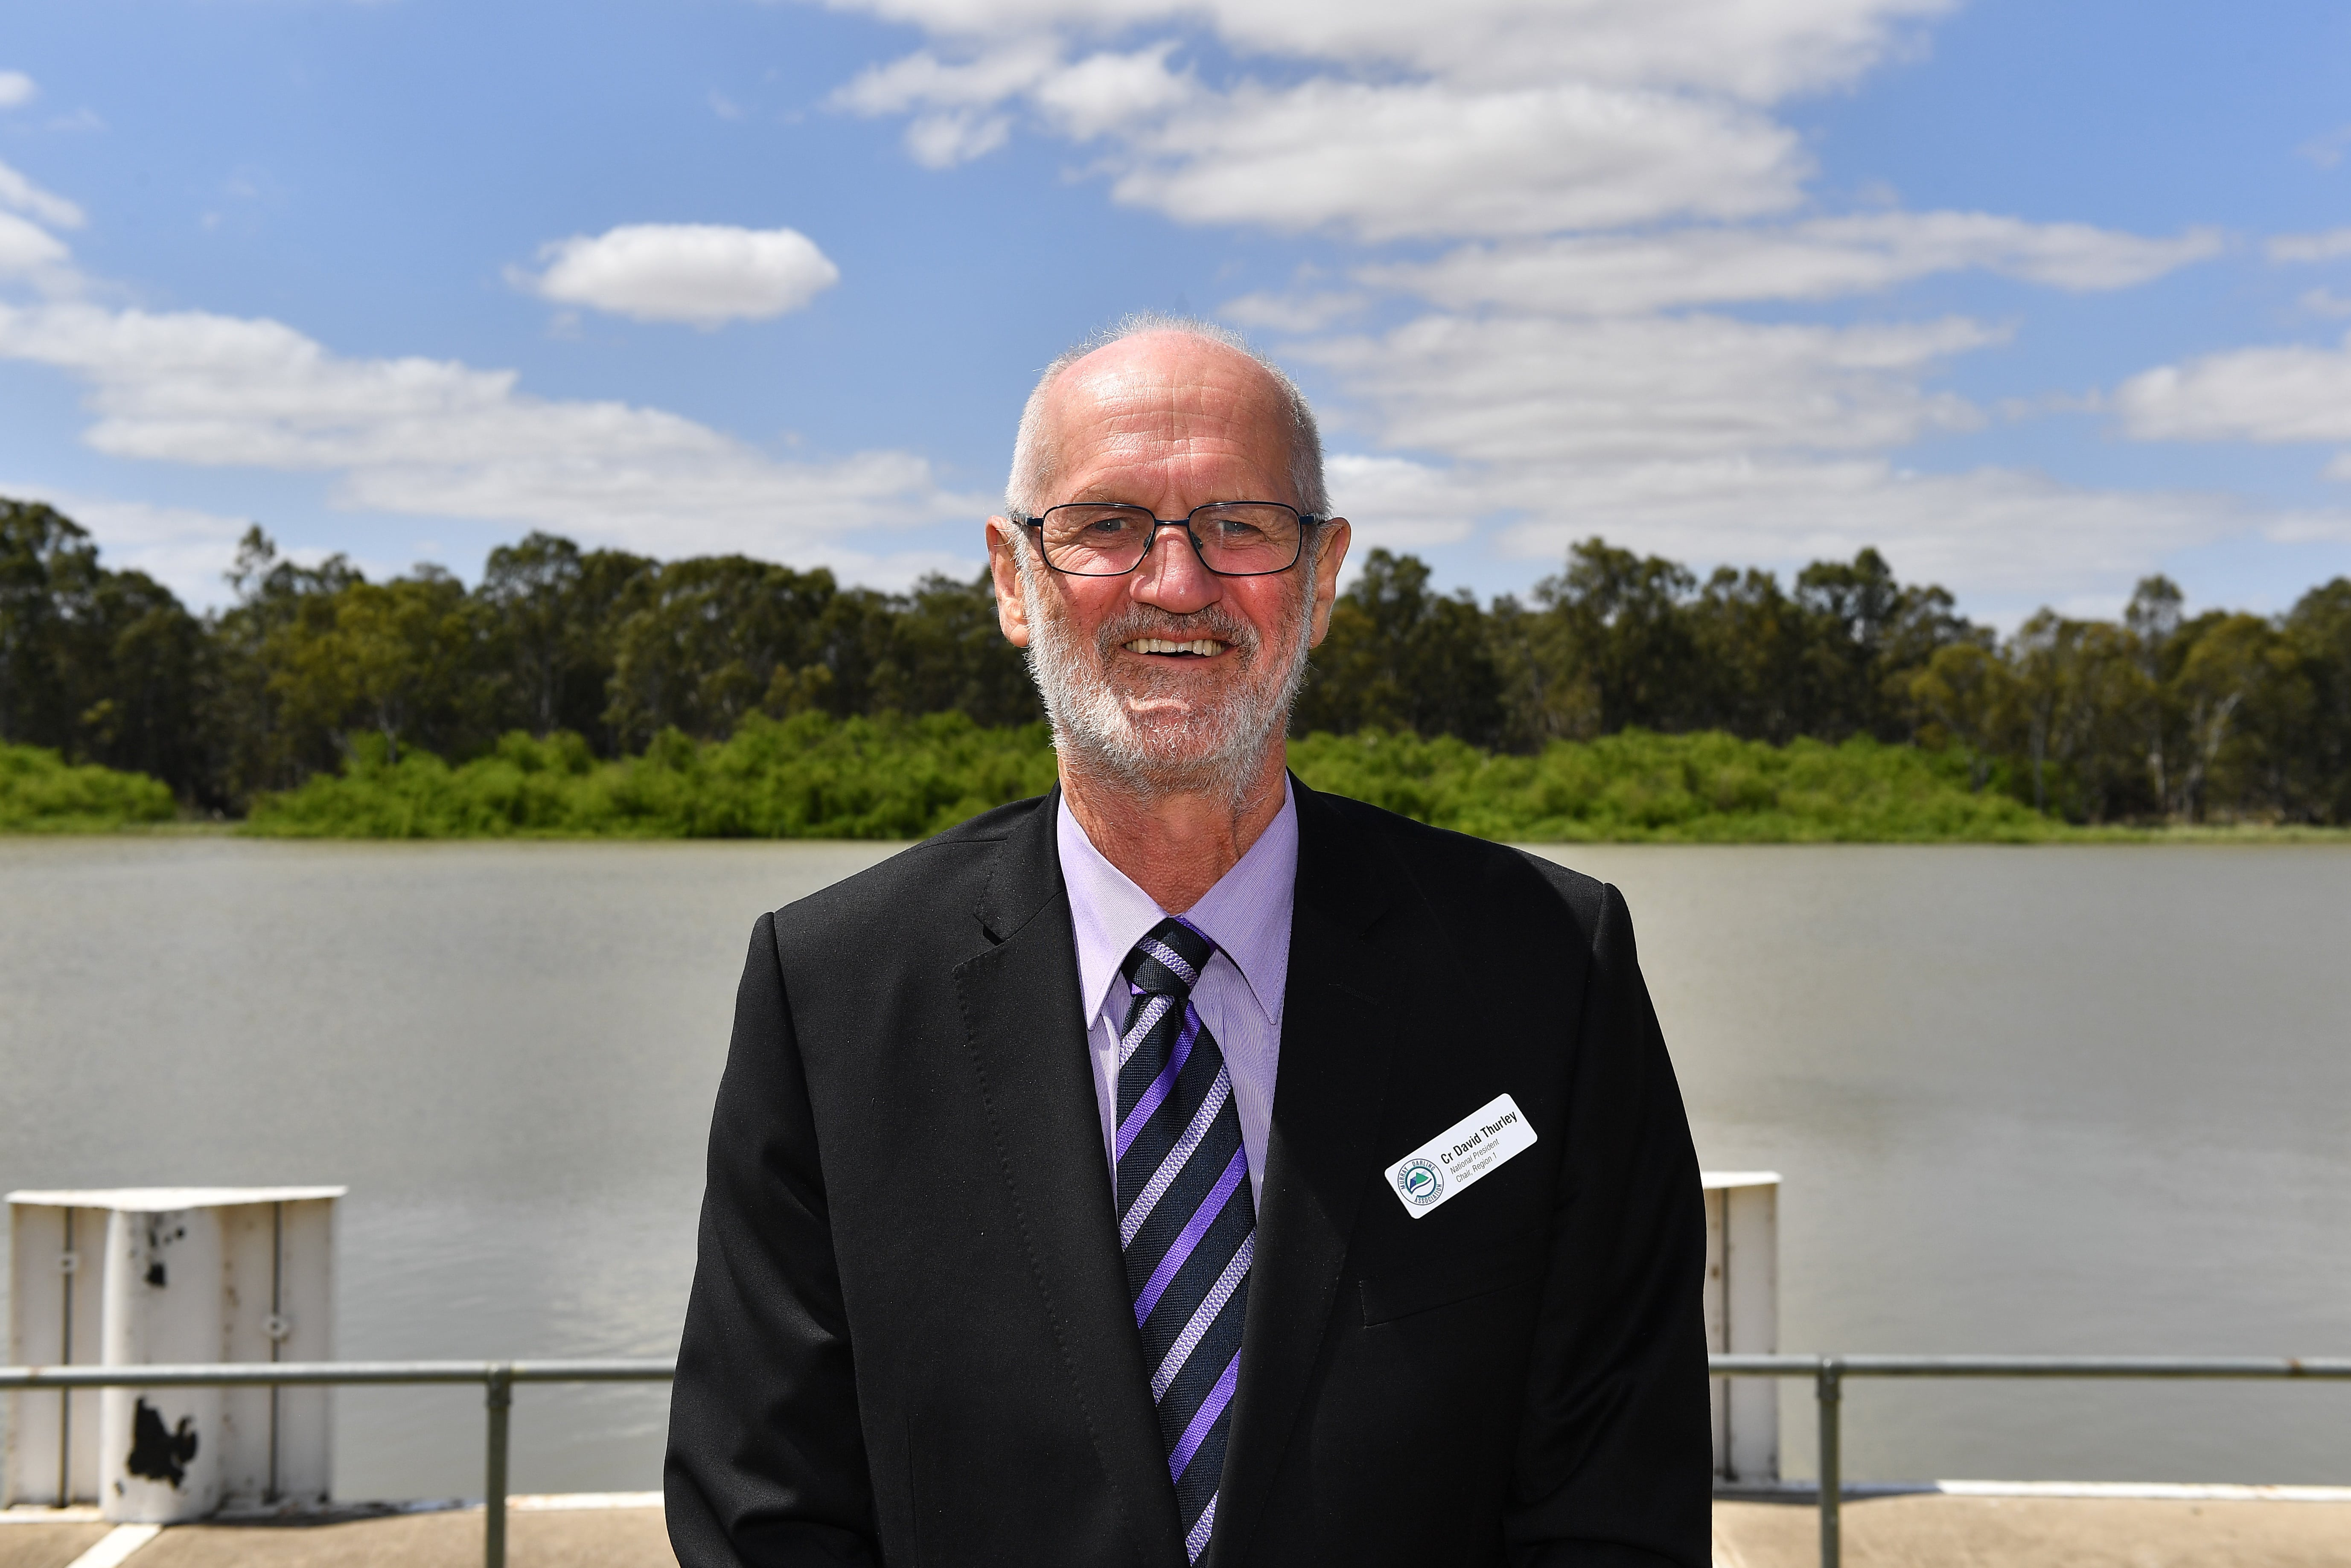 Local government encouraged by NSW Water Reform Action Plan